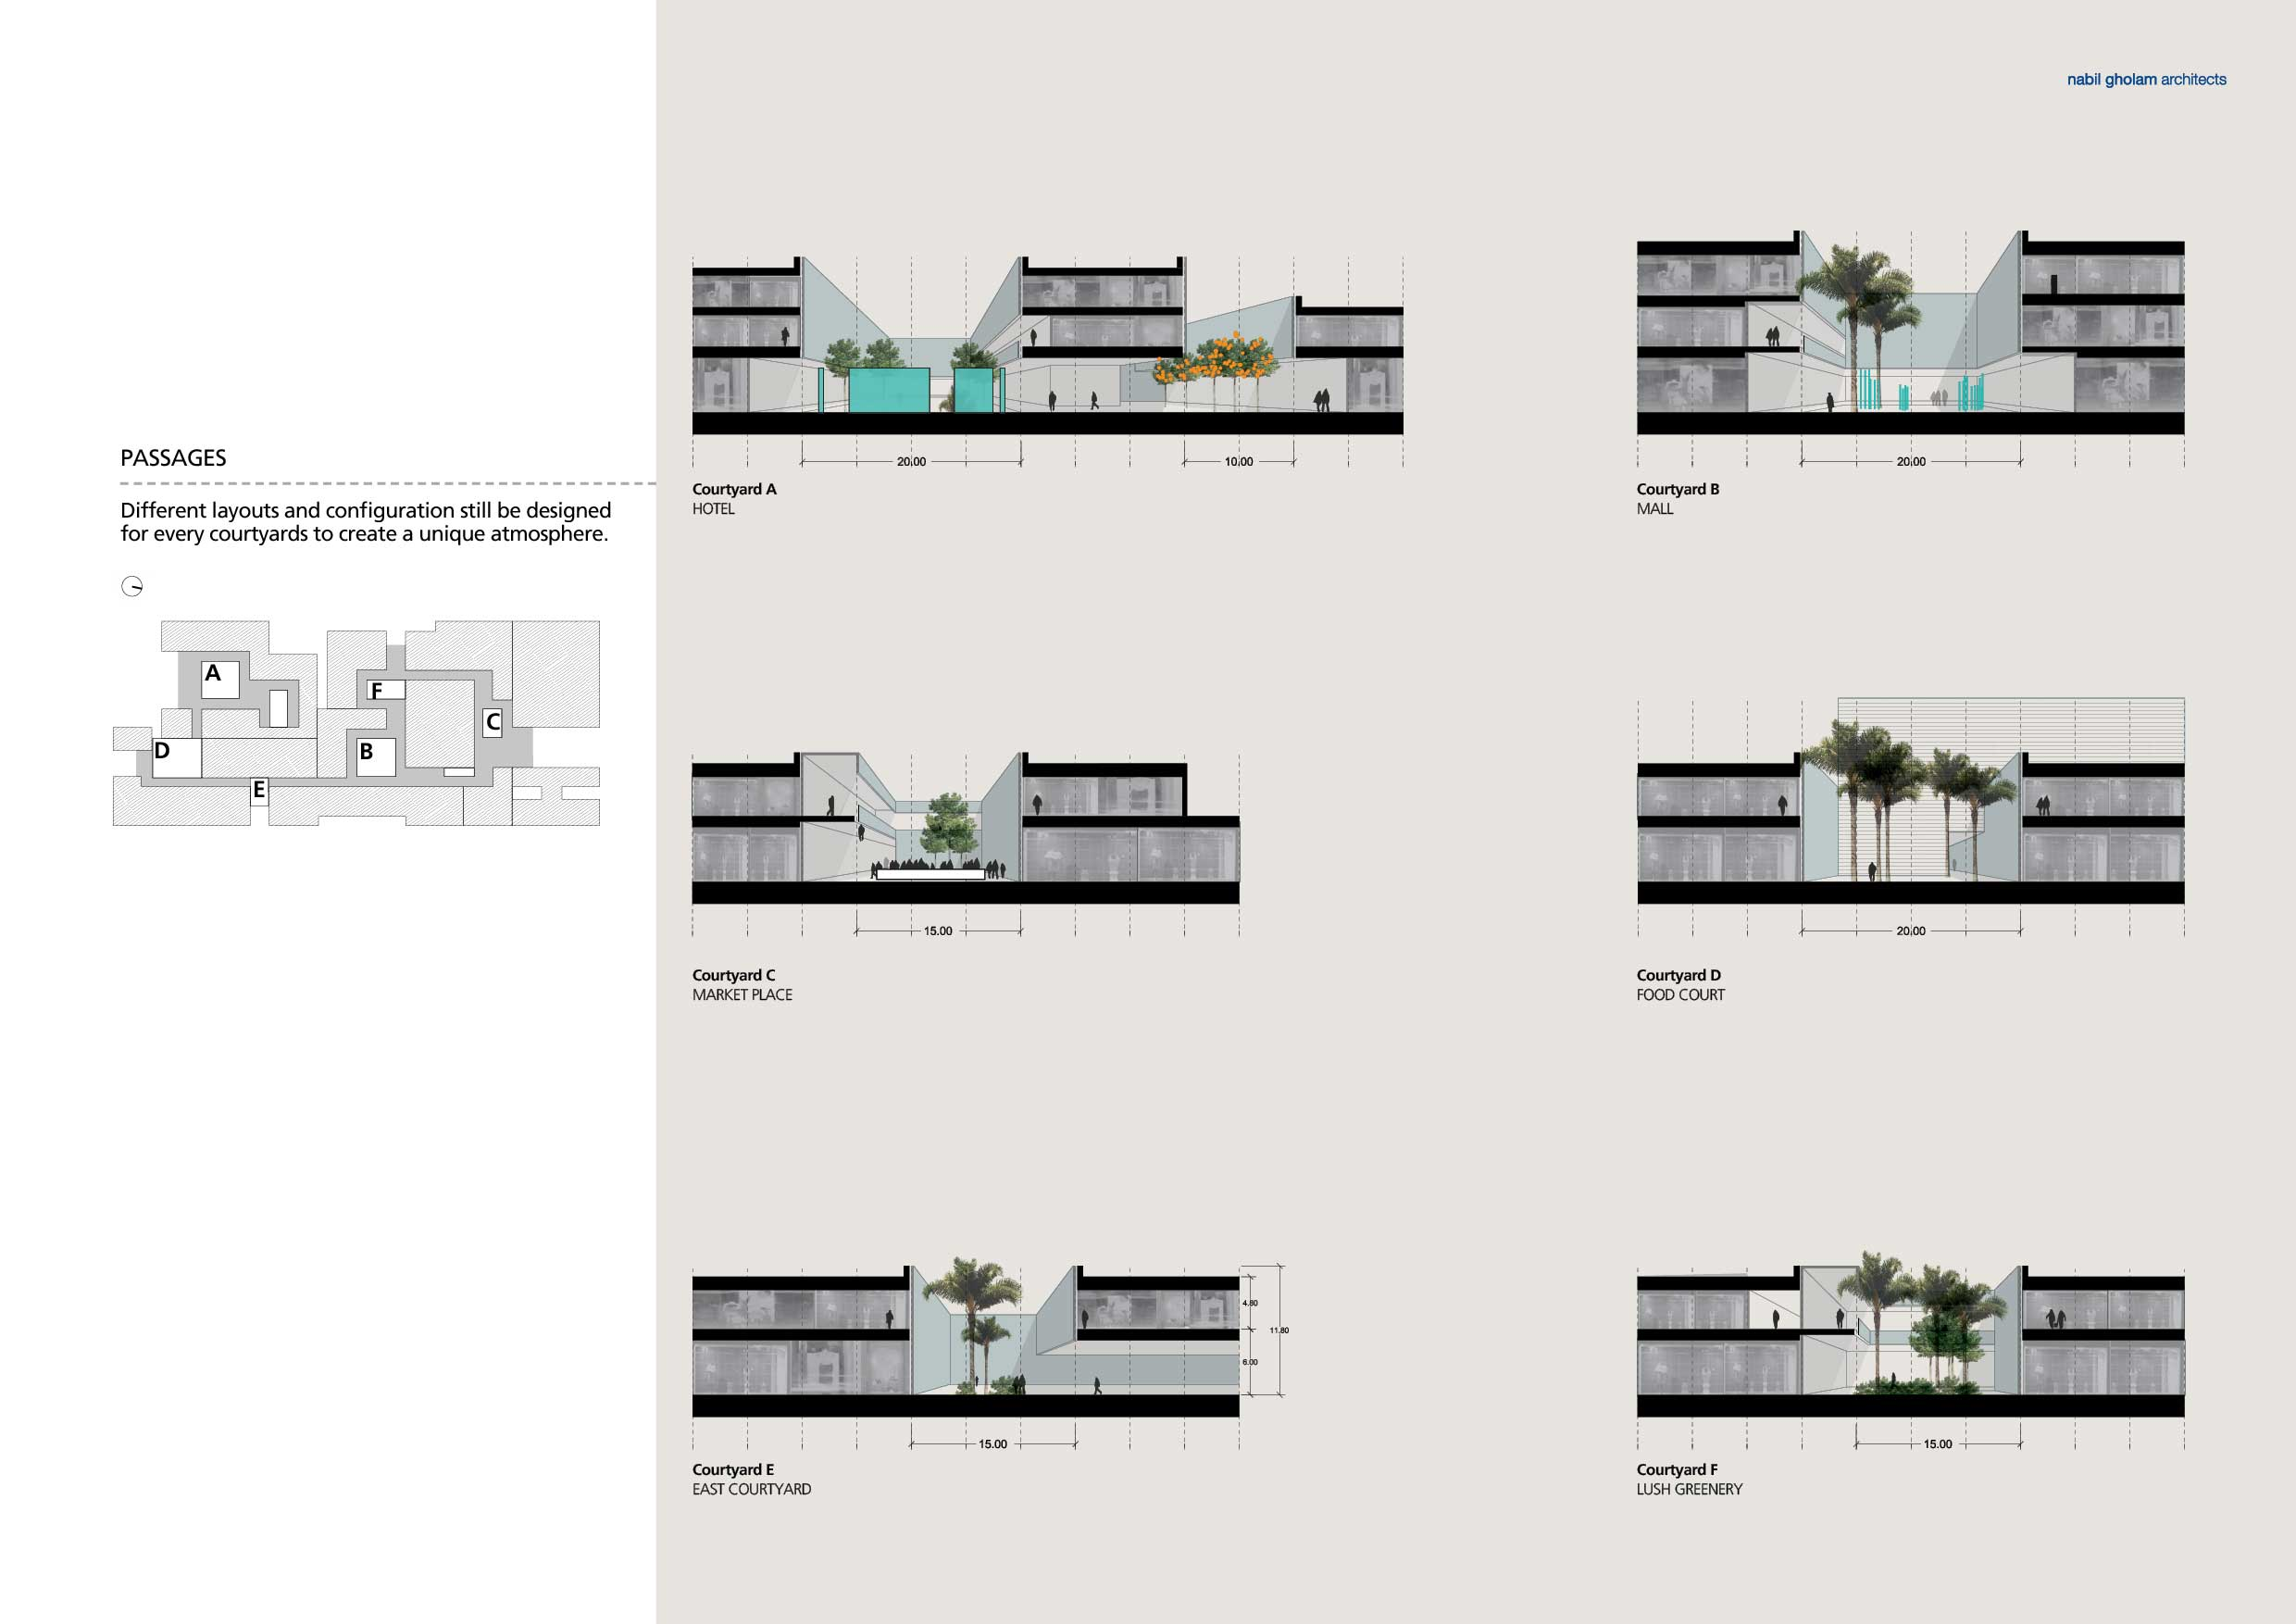 07 - babel - multiple courtyard sections